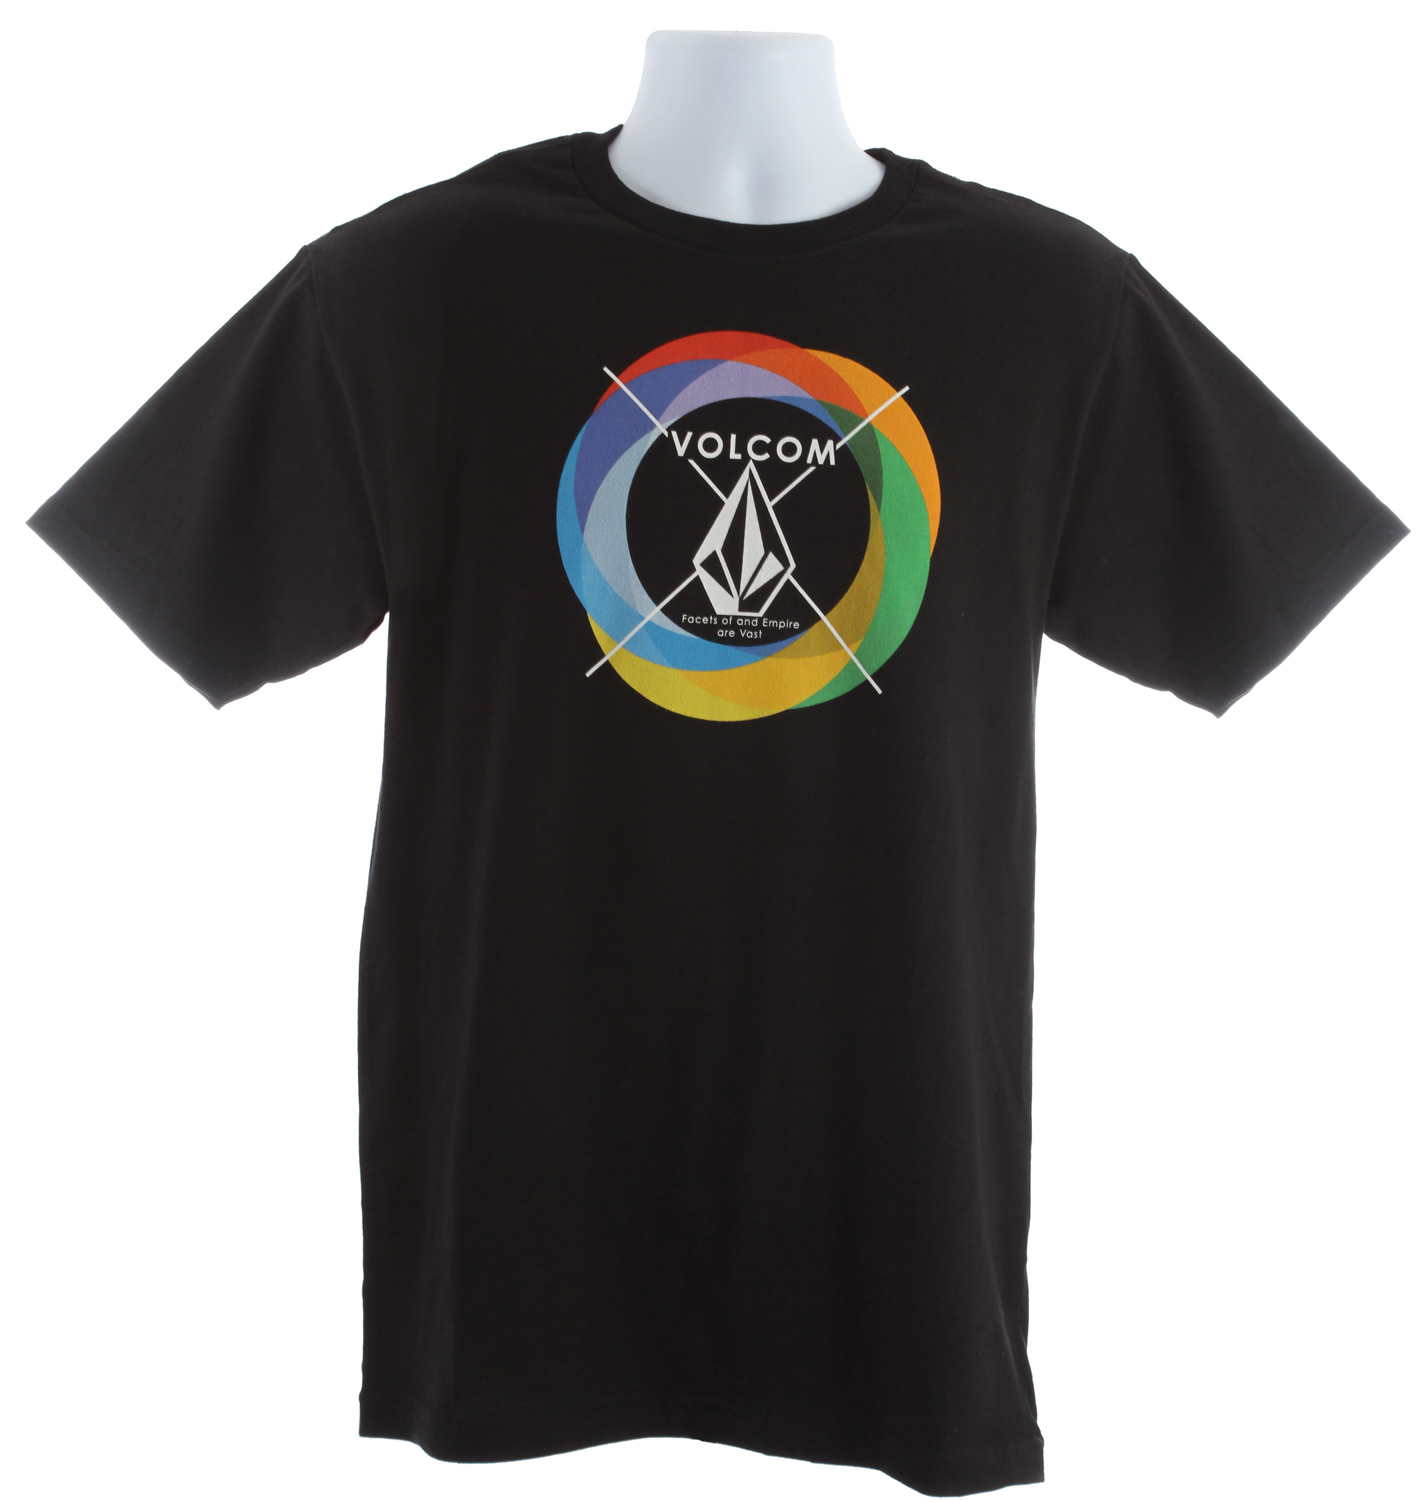 Surf Key Features of the Volcom Round Rainbow T-Shirt: Basic screenprint Basic fit 100% cotton - $14.95